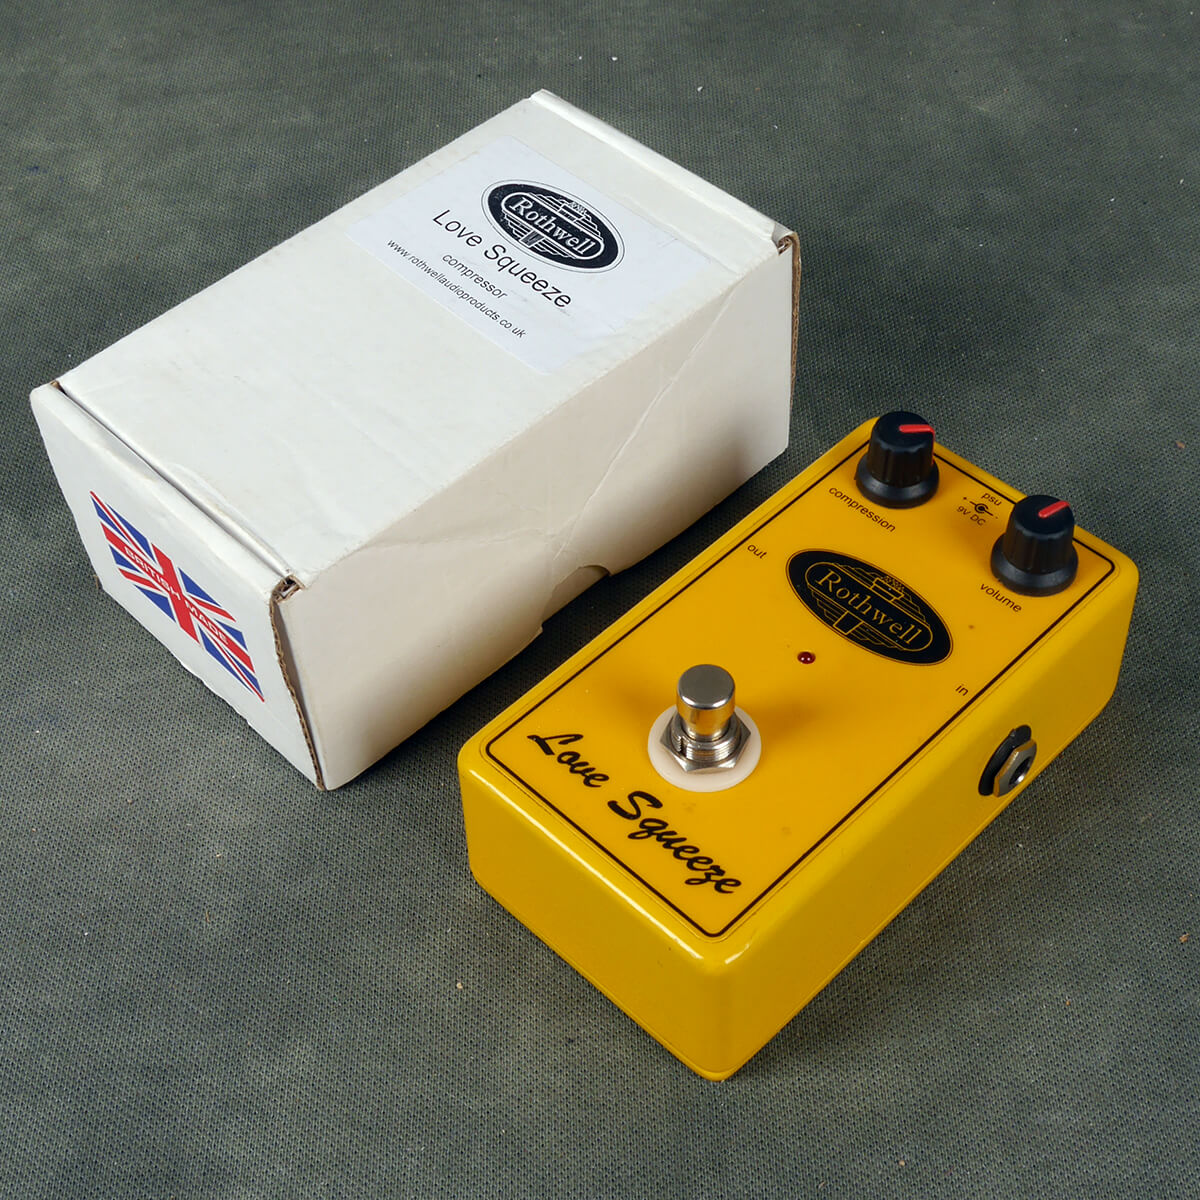 Rothwell Love Squeeze Compression FX Pedal w/Box - 2nd Hand